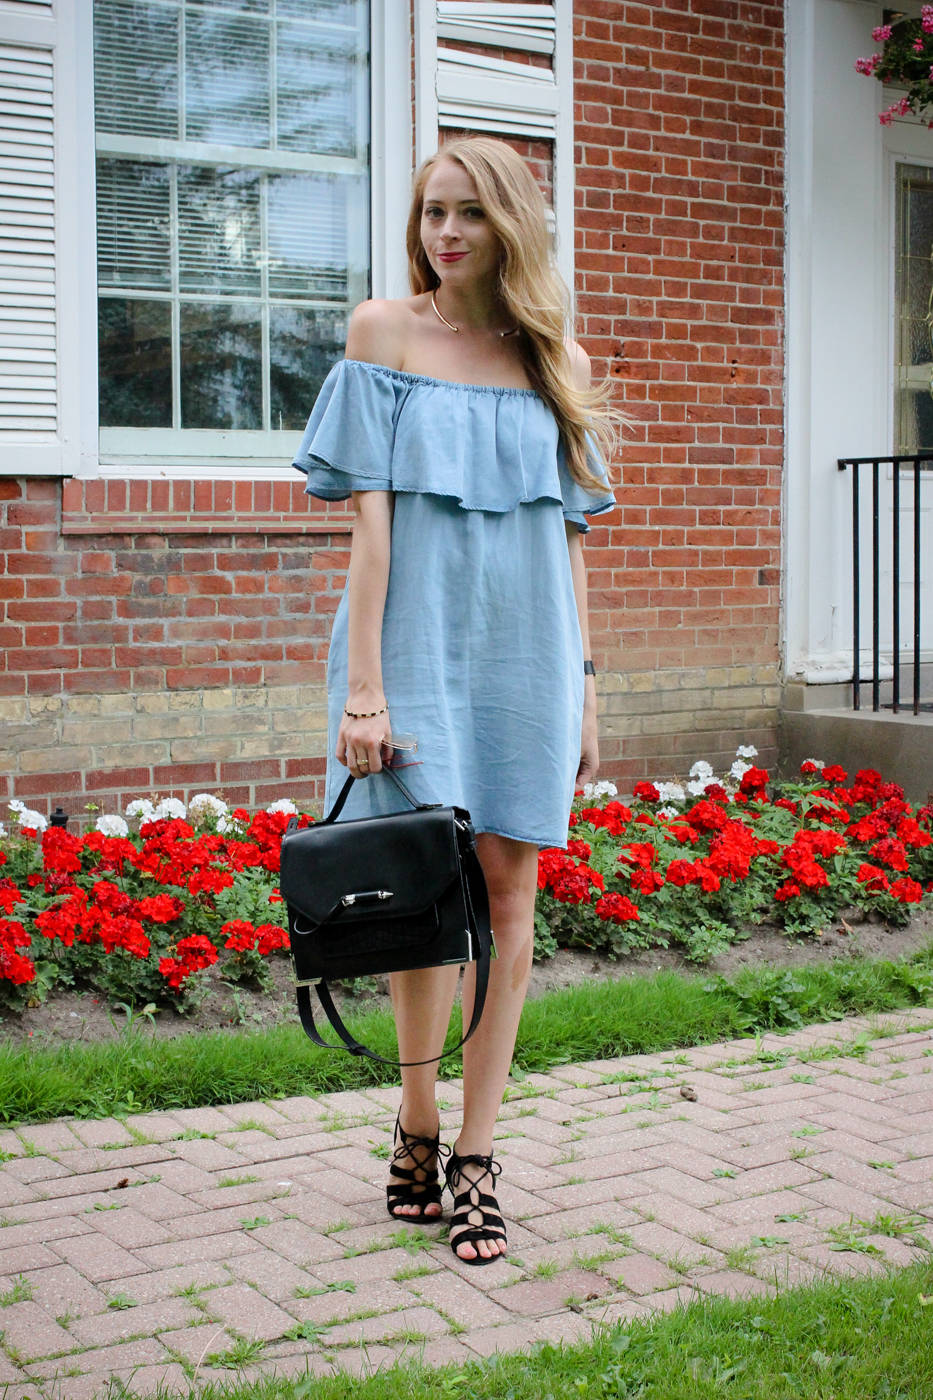 rp_zara-chambray-ruffle-dress-outfit-2-of-8.jpg